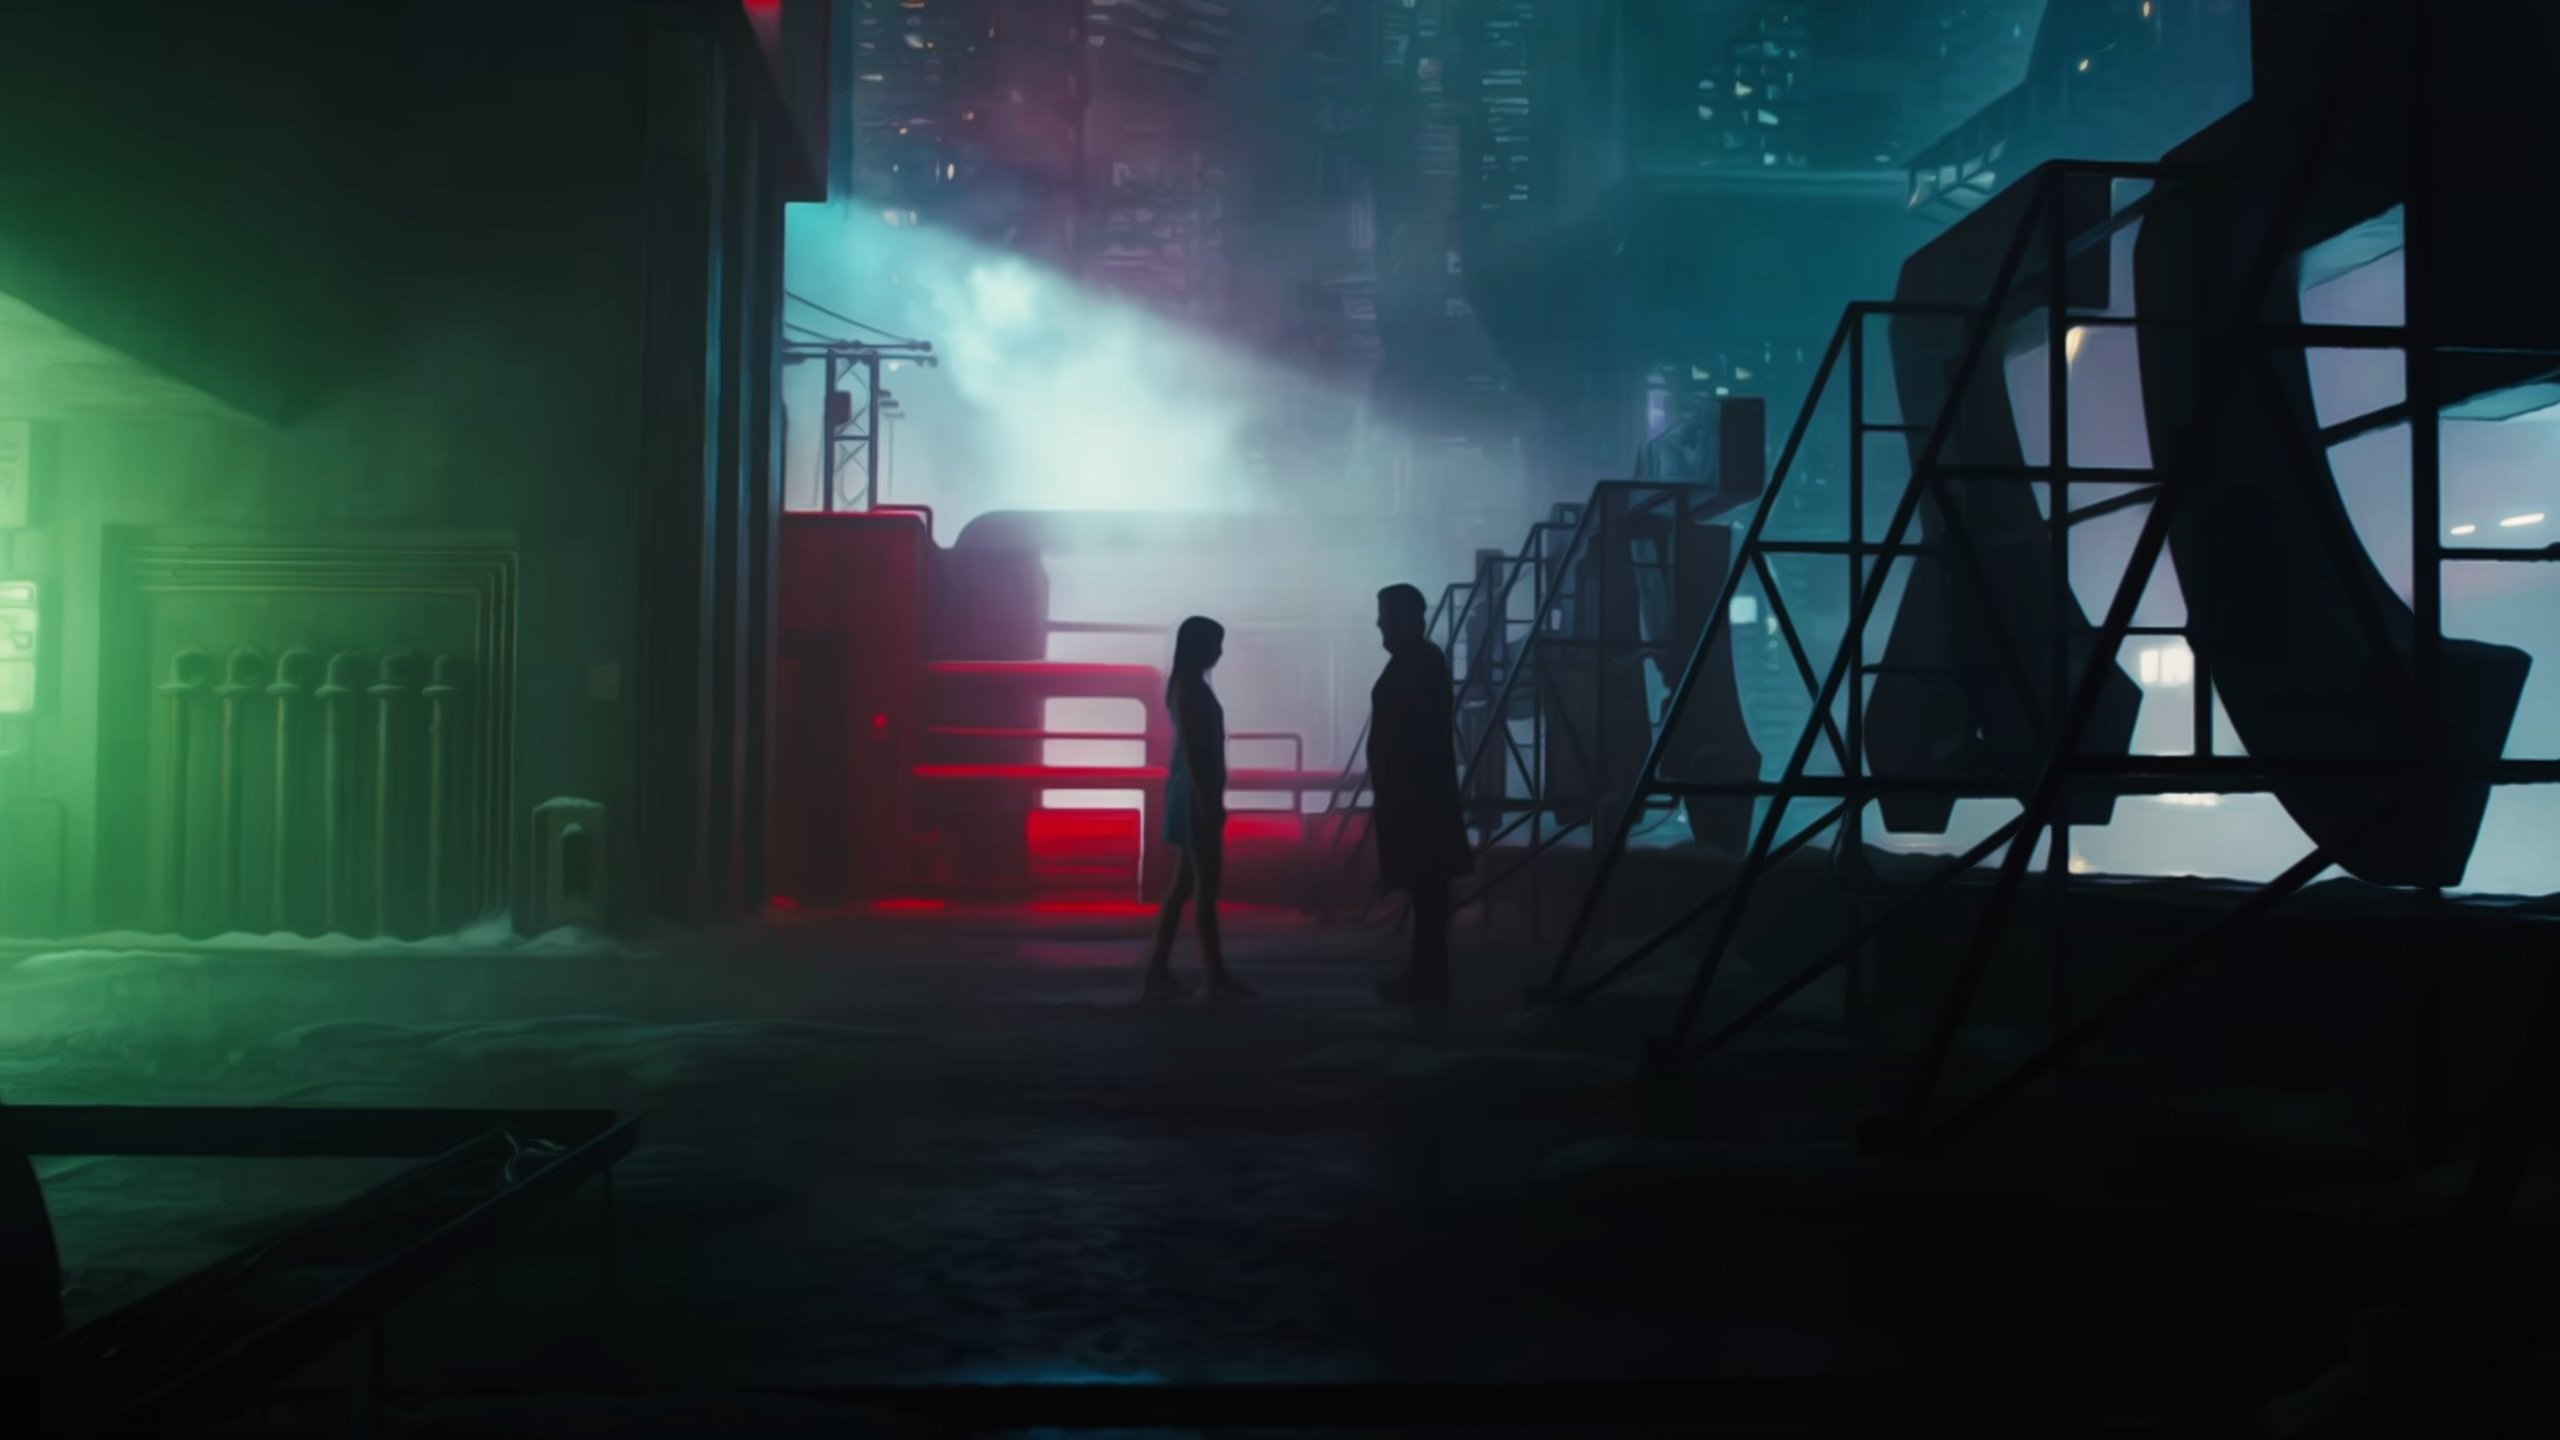 Res: 2560x1440, Blade Runner Wallpapers 13 - 2560 X 1440